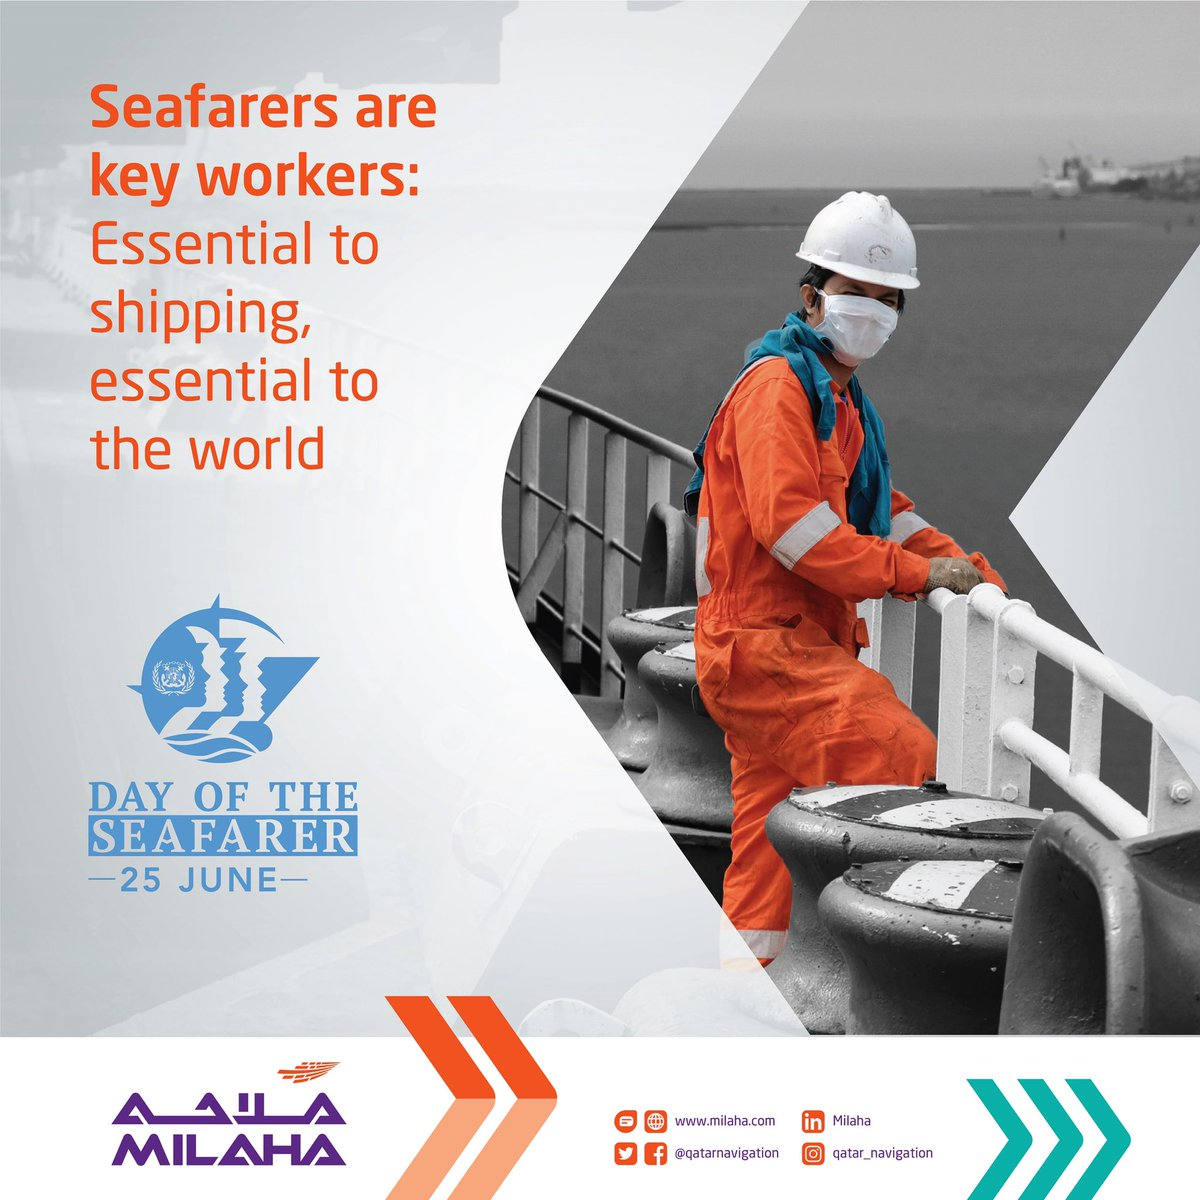 We say a big thank you to all our seafarers who are working hard to support our economy and to bring vital supplies. #milahatogether #dayoftheseafarer20 #SeafarersAreKeyWorkers #maritime #ship #shipping #sea #lifeatsea #seaman #sailor #seafarer #instashipping #instaship